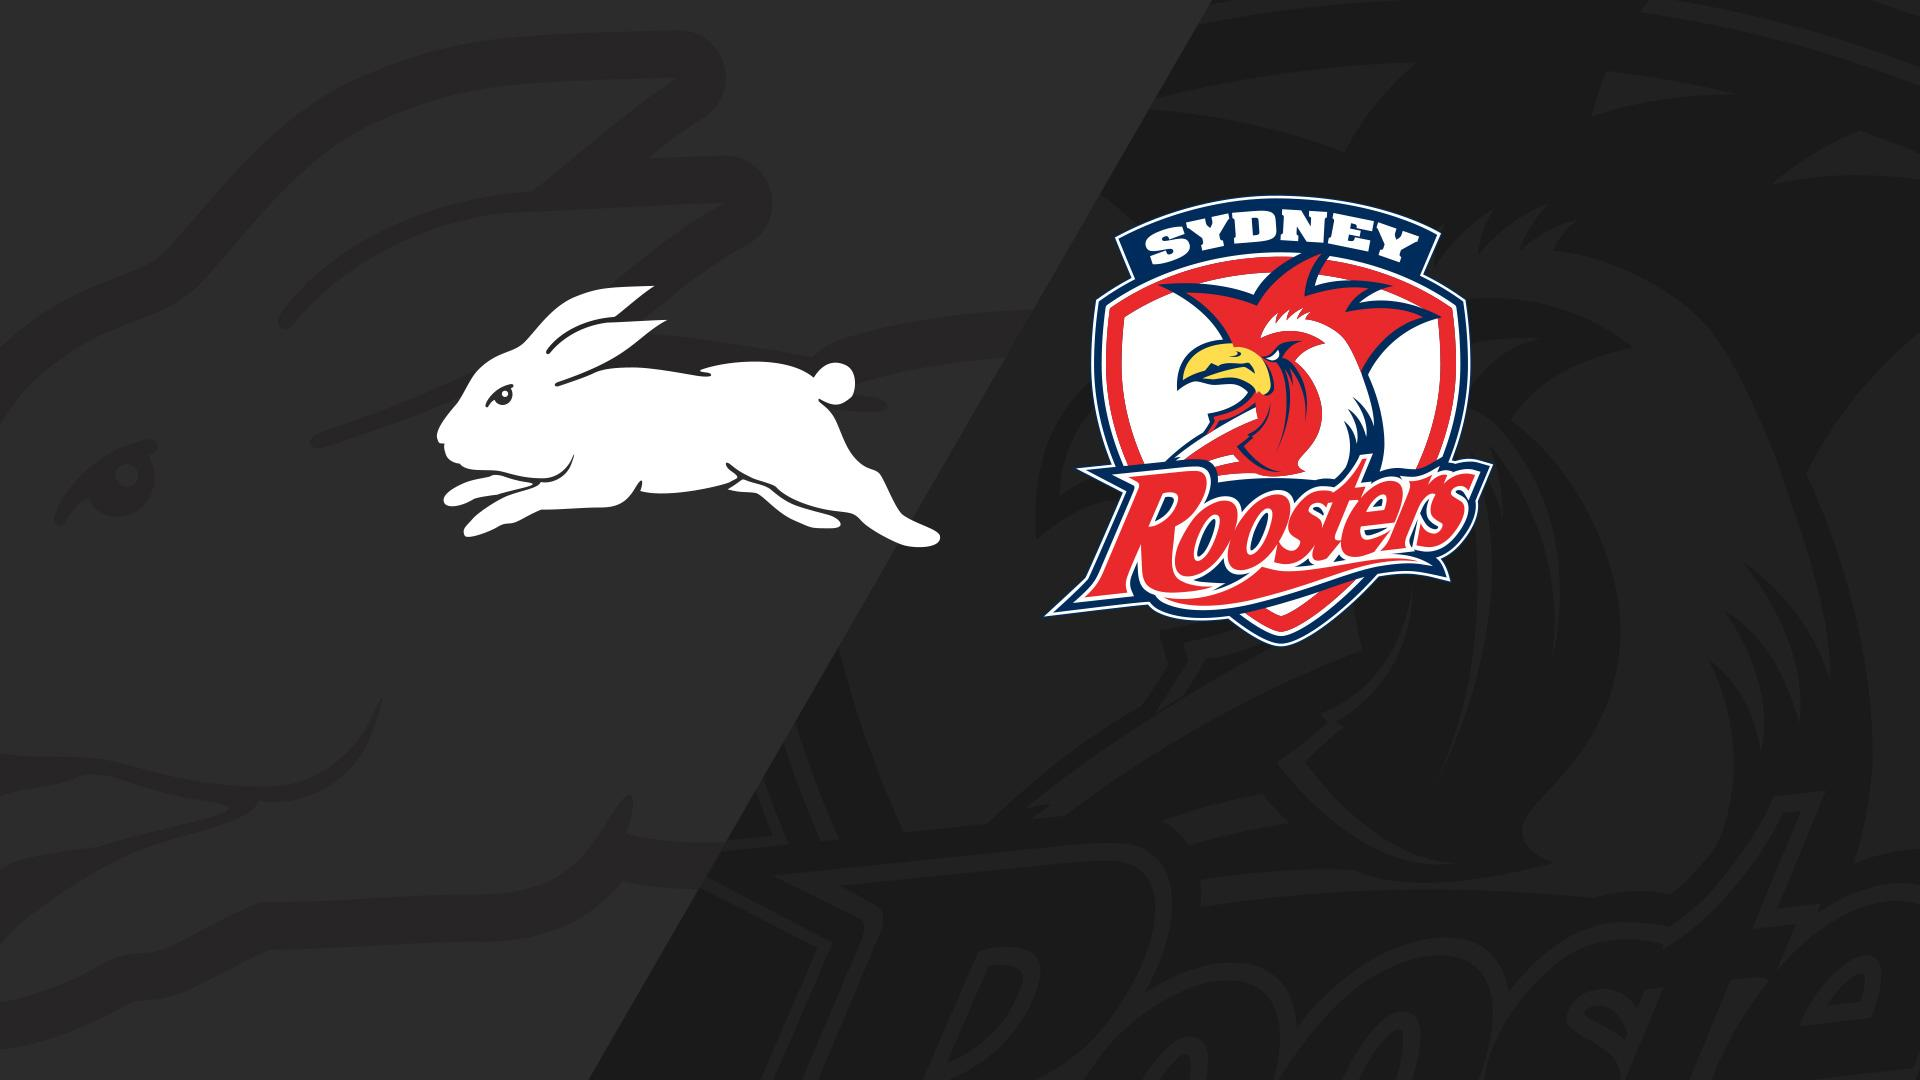 Full Match Replay: Rabbitohs v Roosters - Round 22, 2018